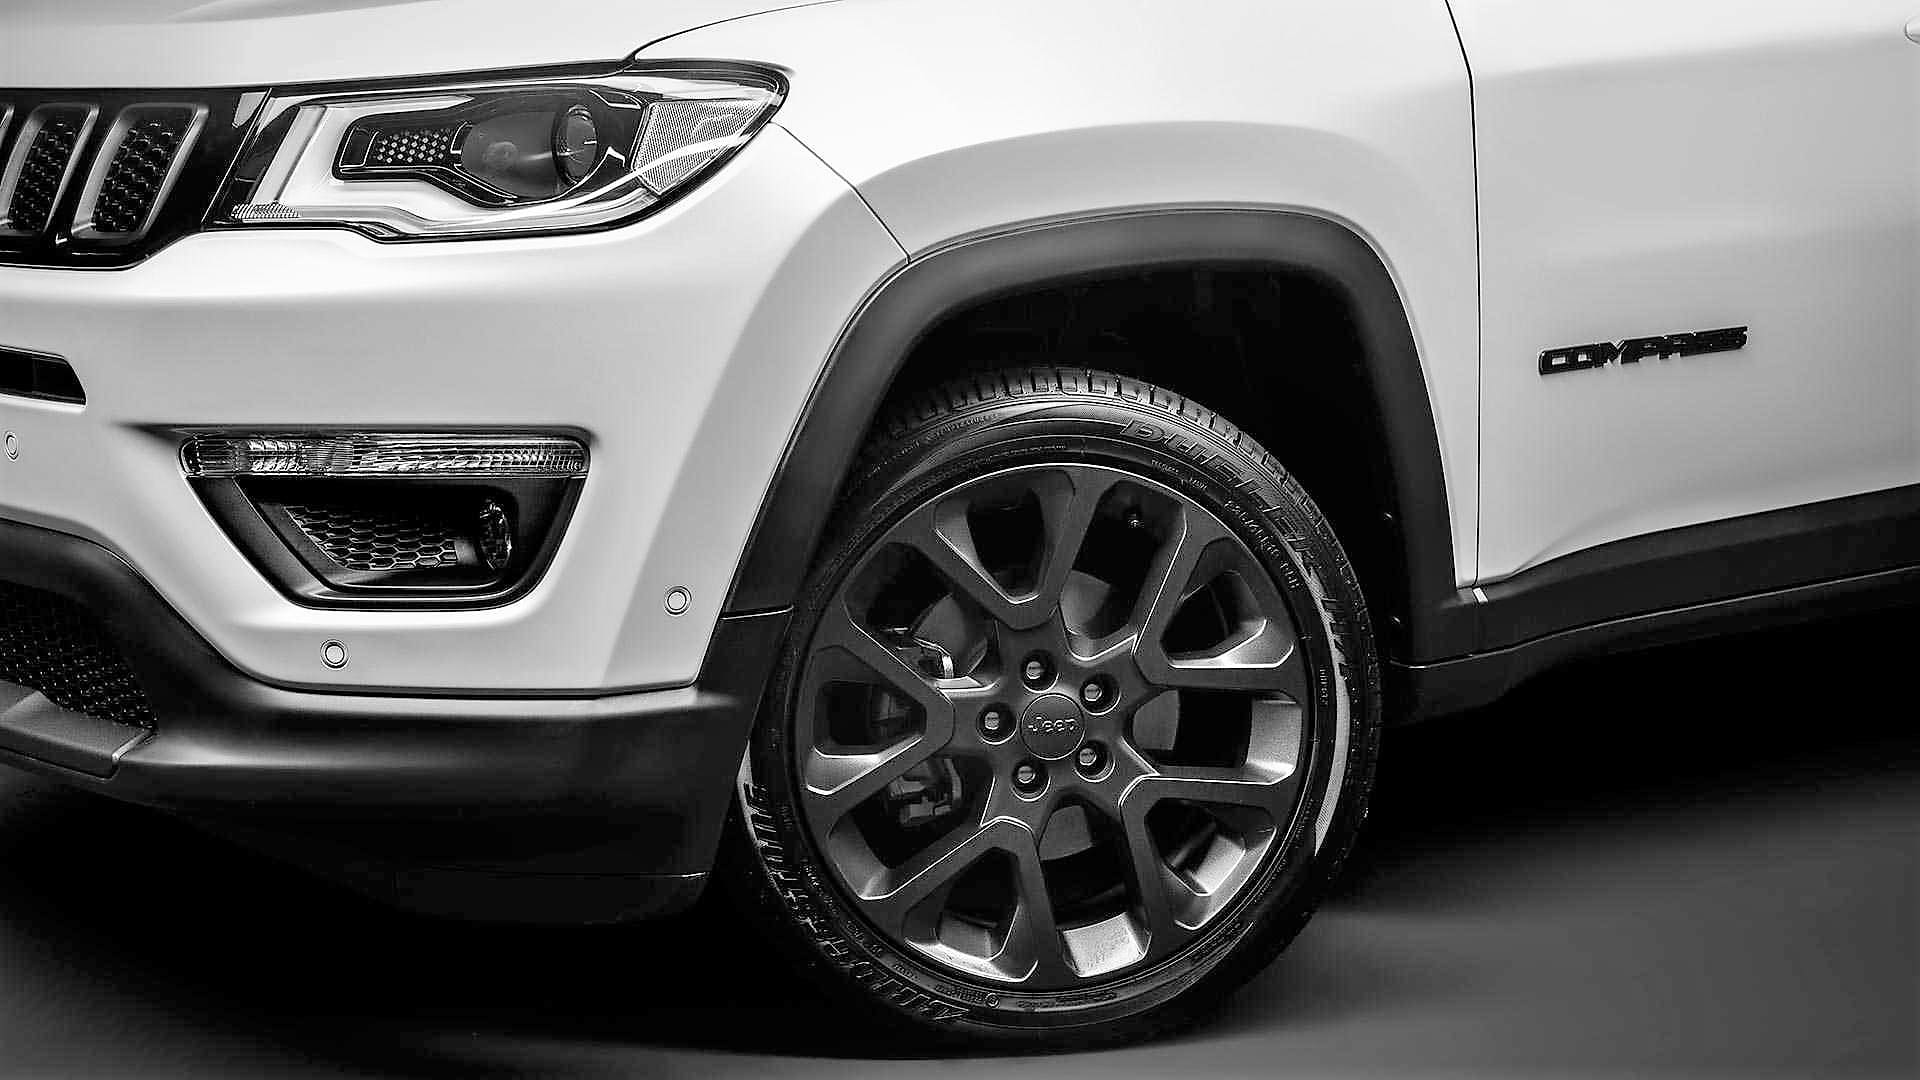 Jeep-Compass-Wheels-PPS-Jeep